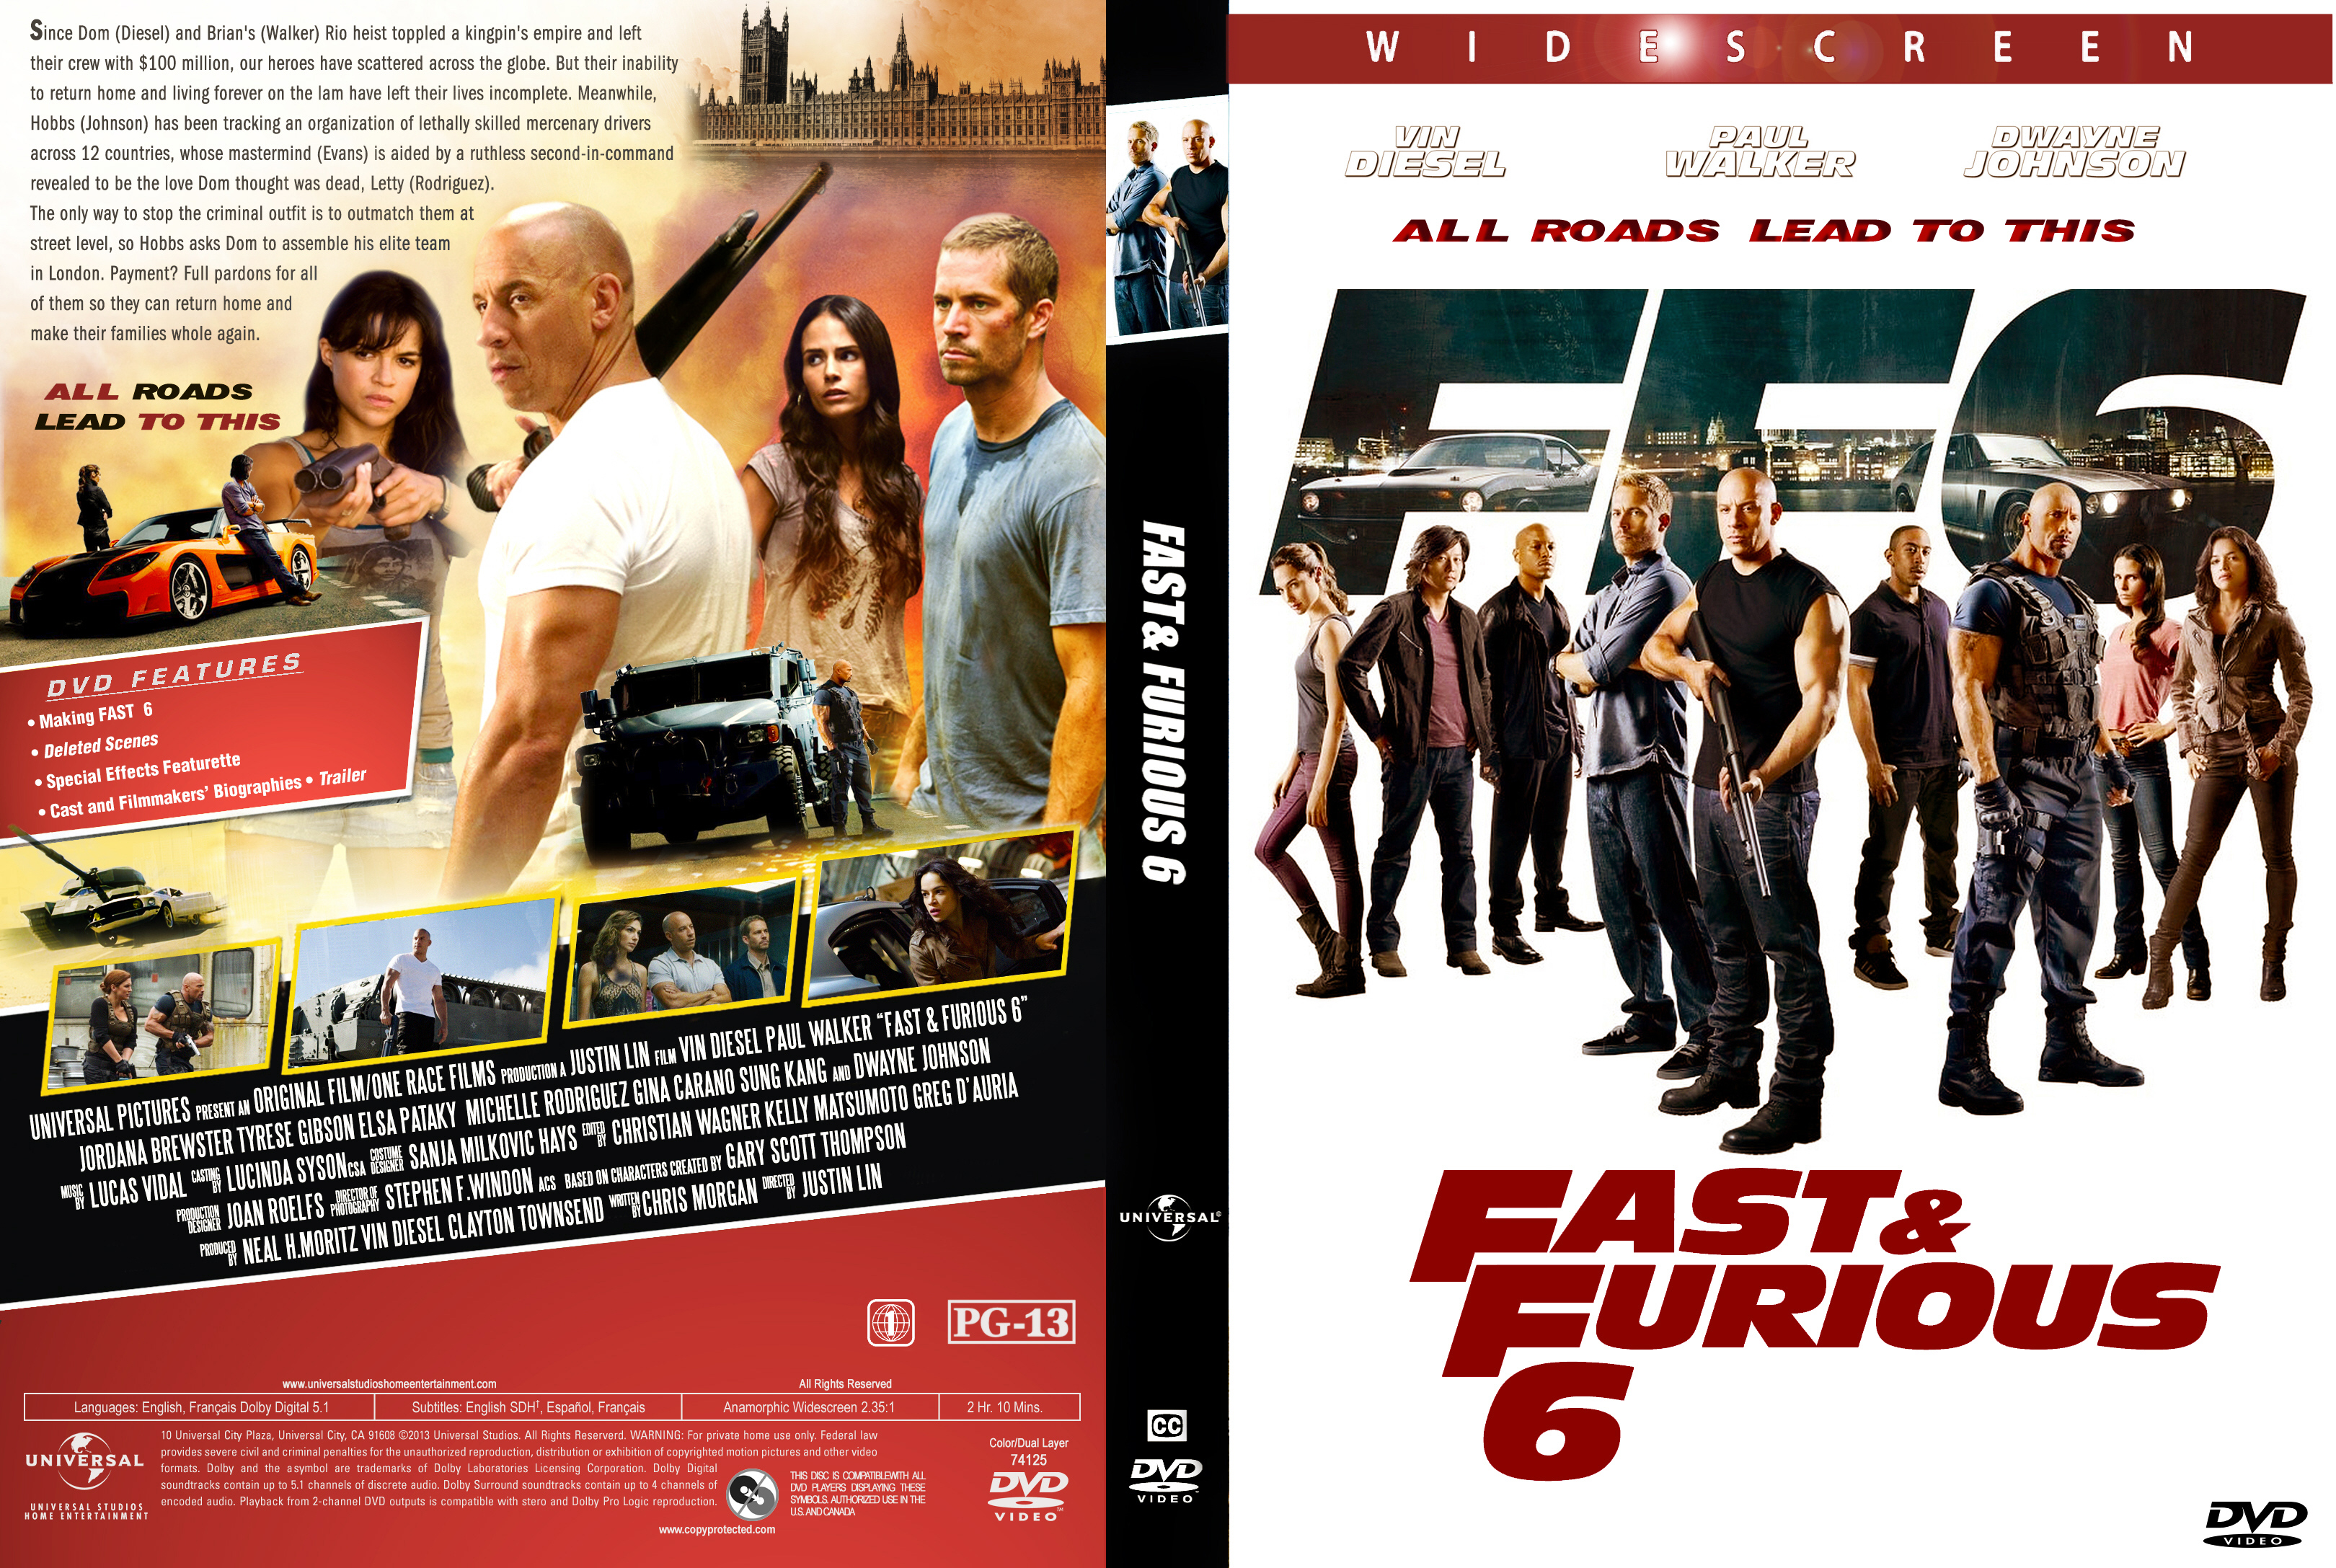 Fast and furious 6 movie cover